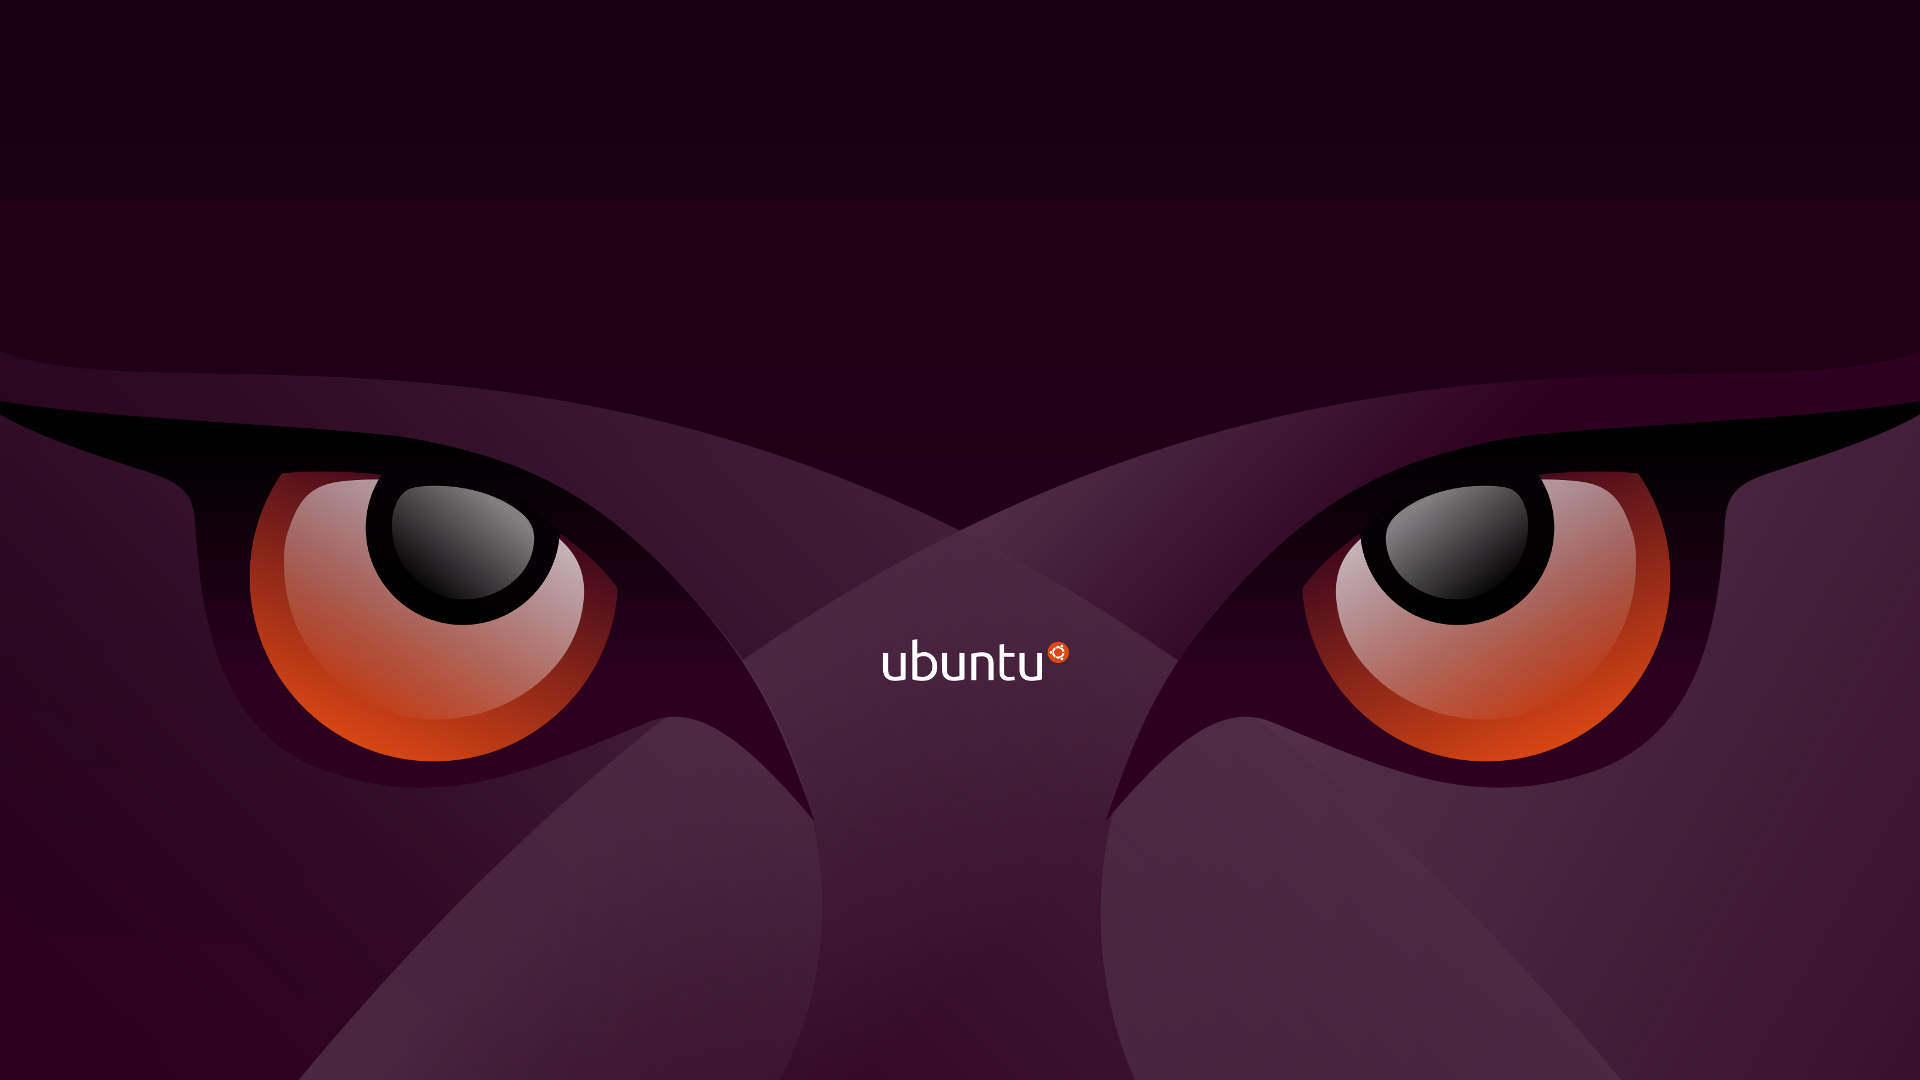 Ubuntu Wallpapers Desktop Wallpaper 1920x1080 1920x1080